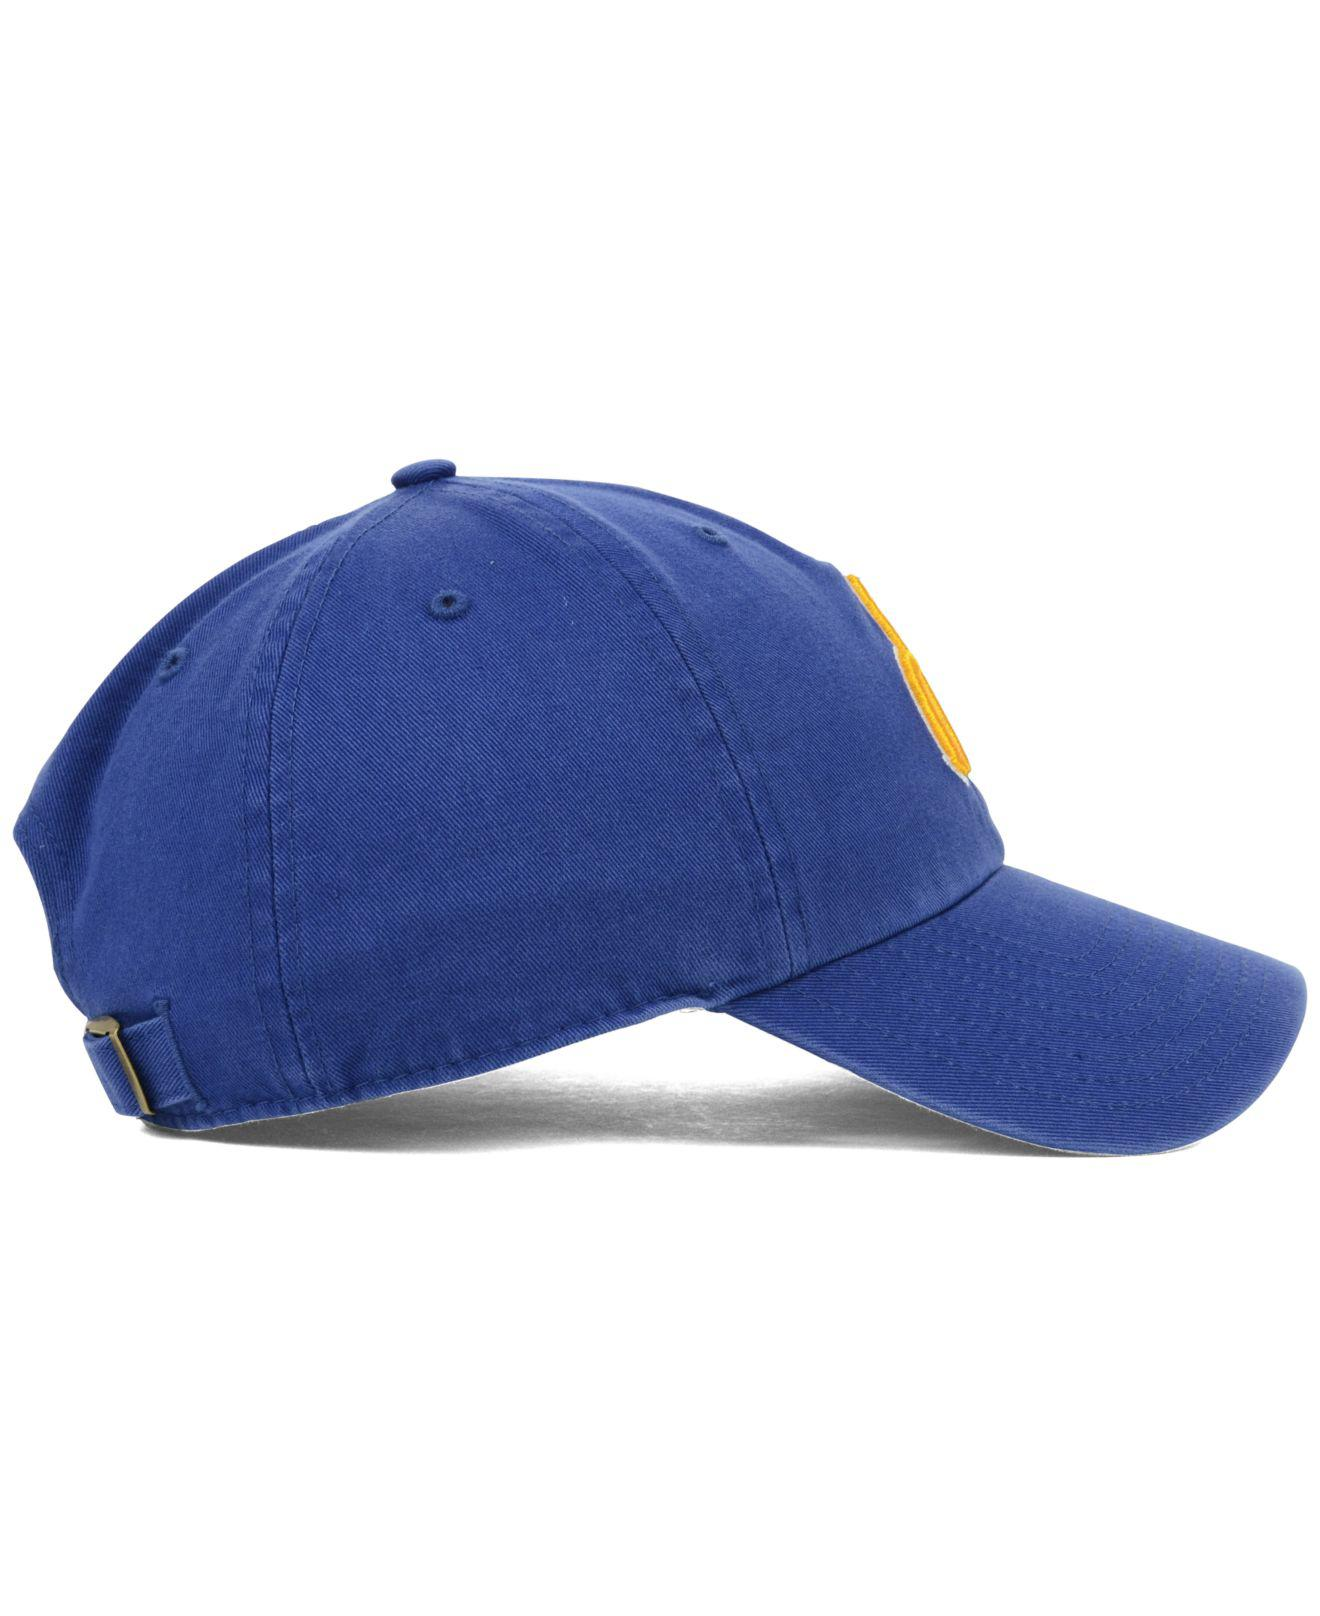 online store 56895 2940f ... shopping lyst 47 brand seattle mariners clean up cap in blue for men  3d5ca 0c71f